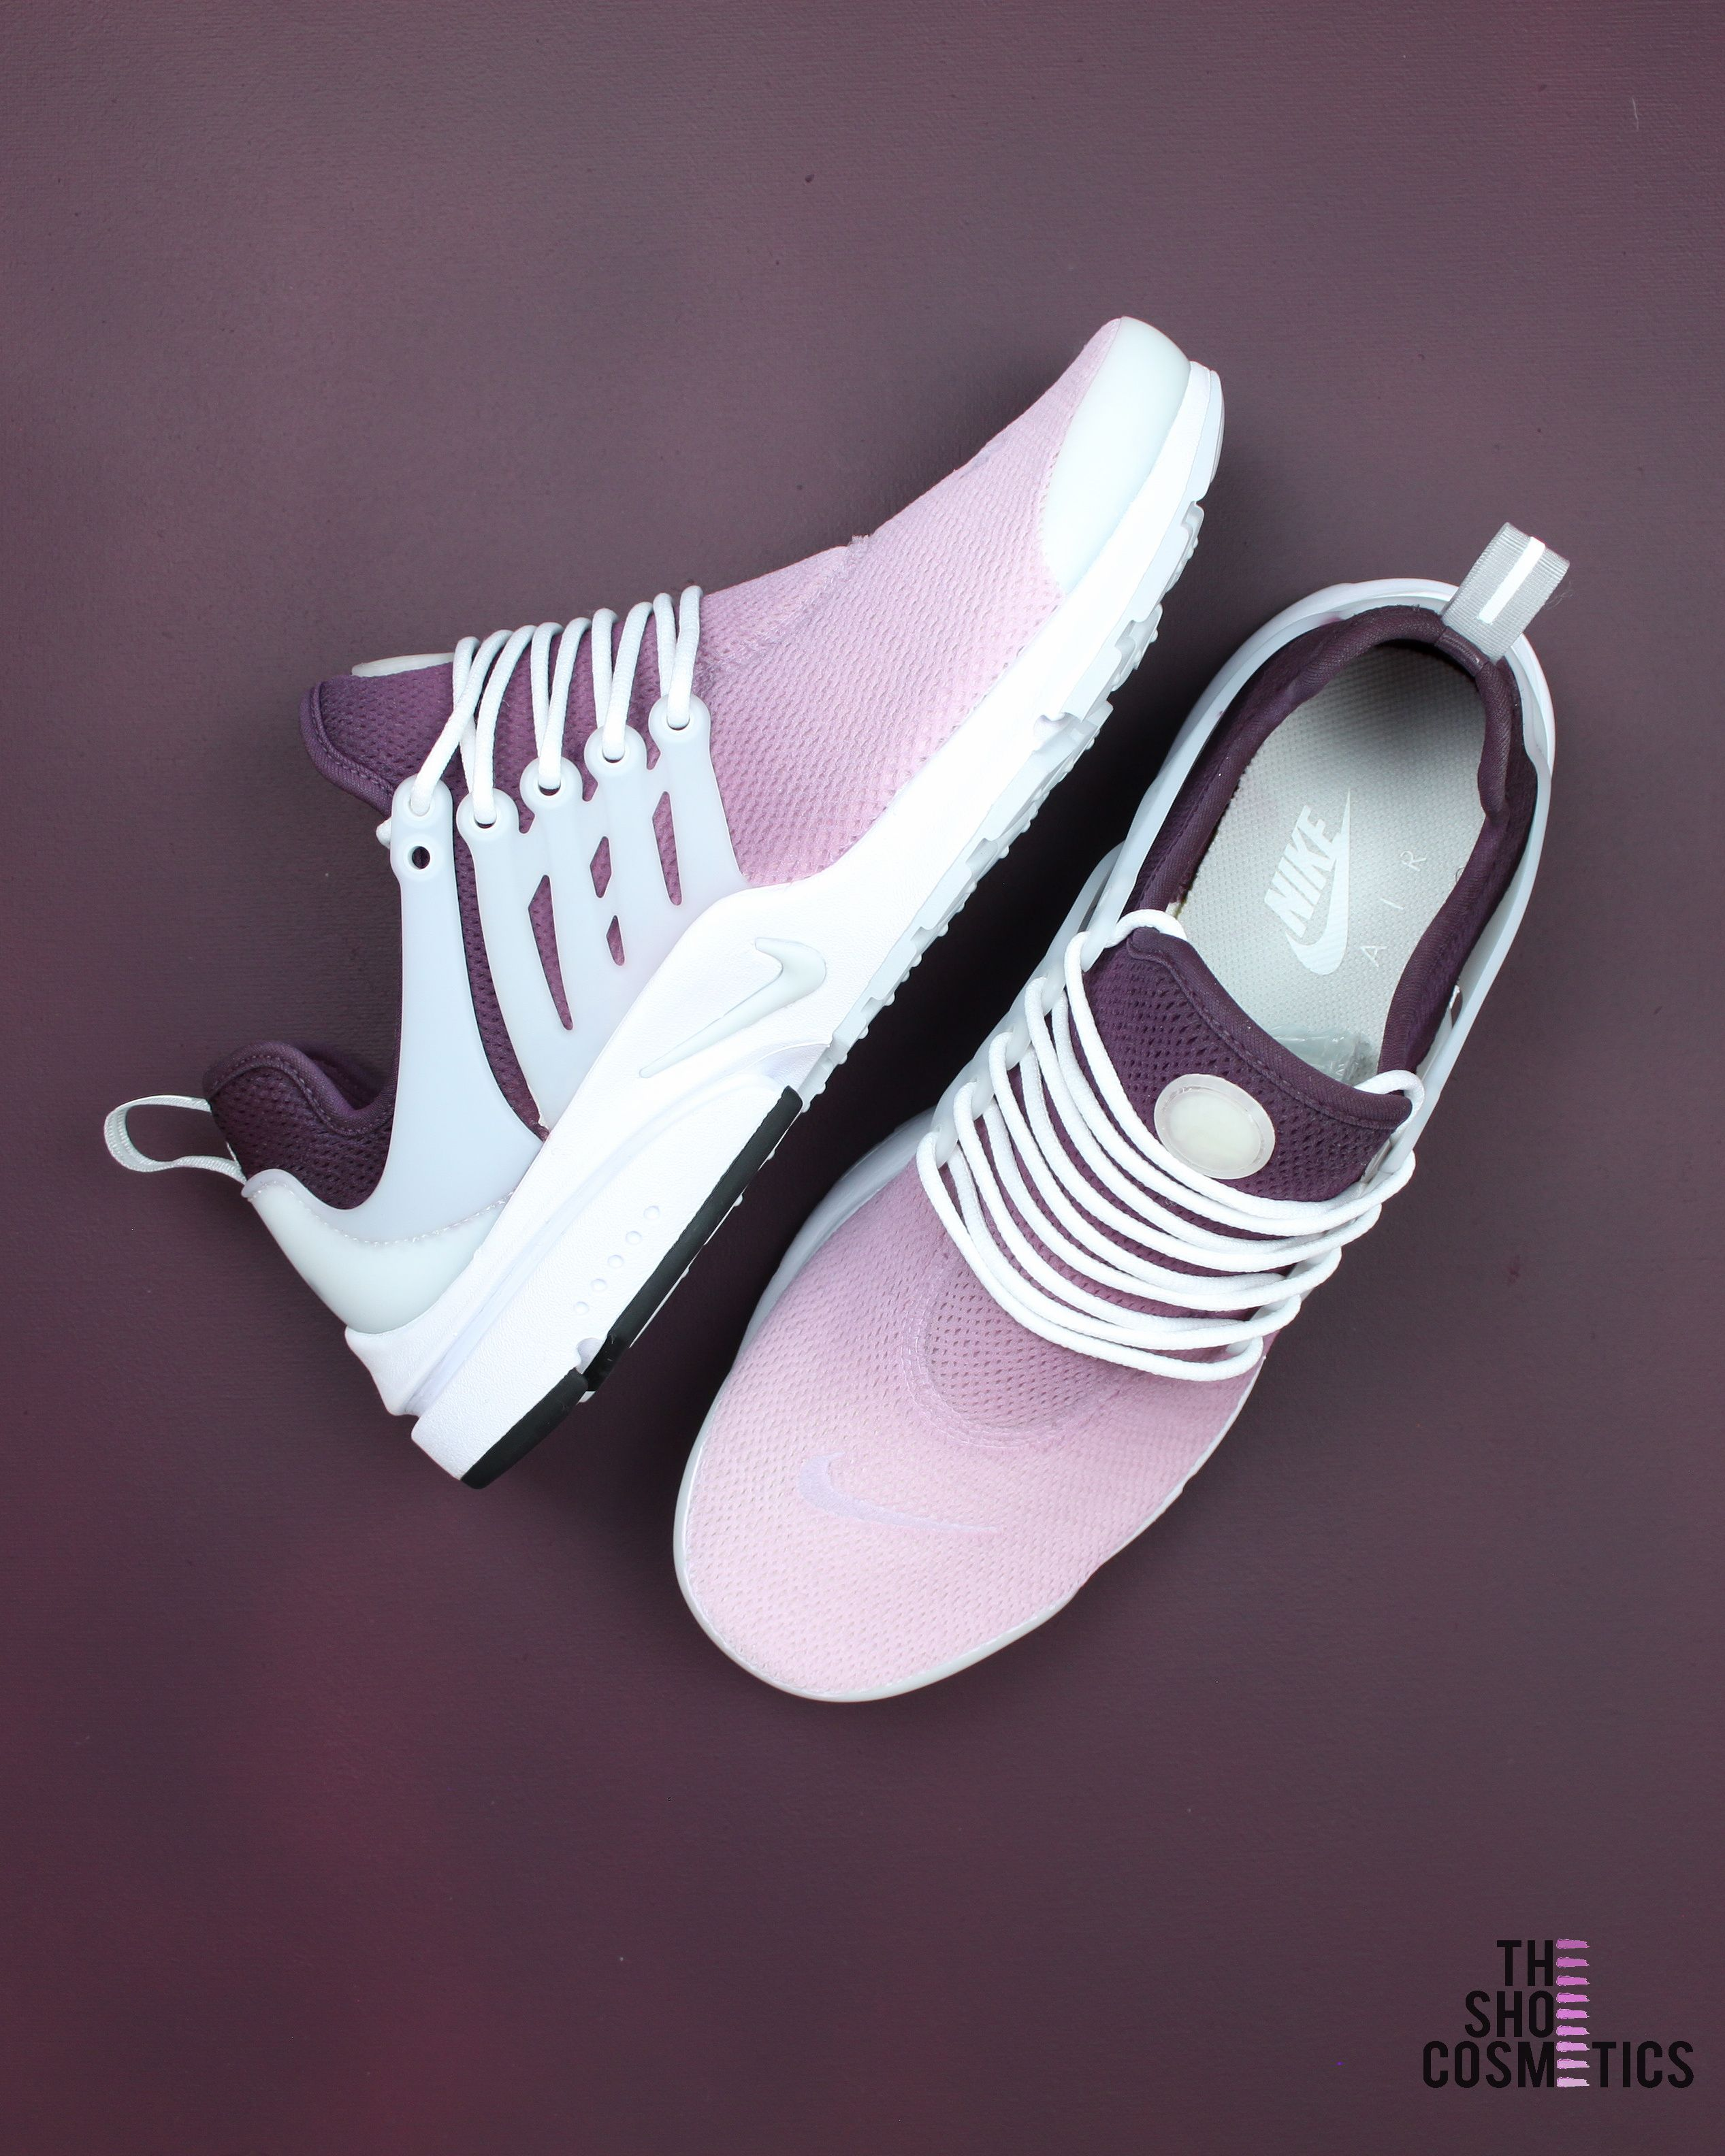 premium selection db310 f718e Explore our custom Nike Air Presto sneakers in this maroon ombre design. If  you love the Nike Air Presto then these Custom Nike shoes are perfect for  you.